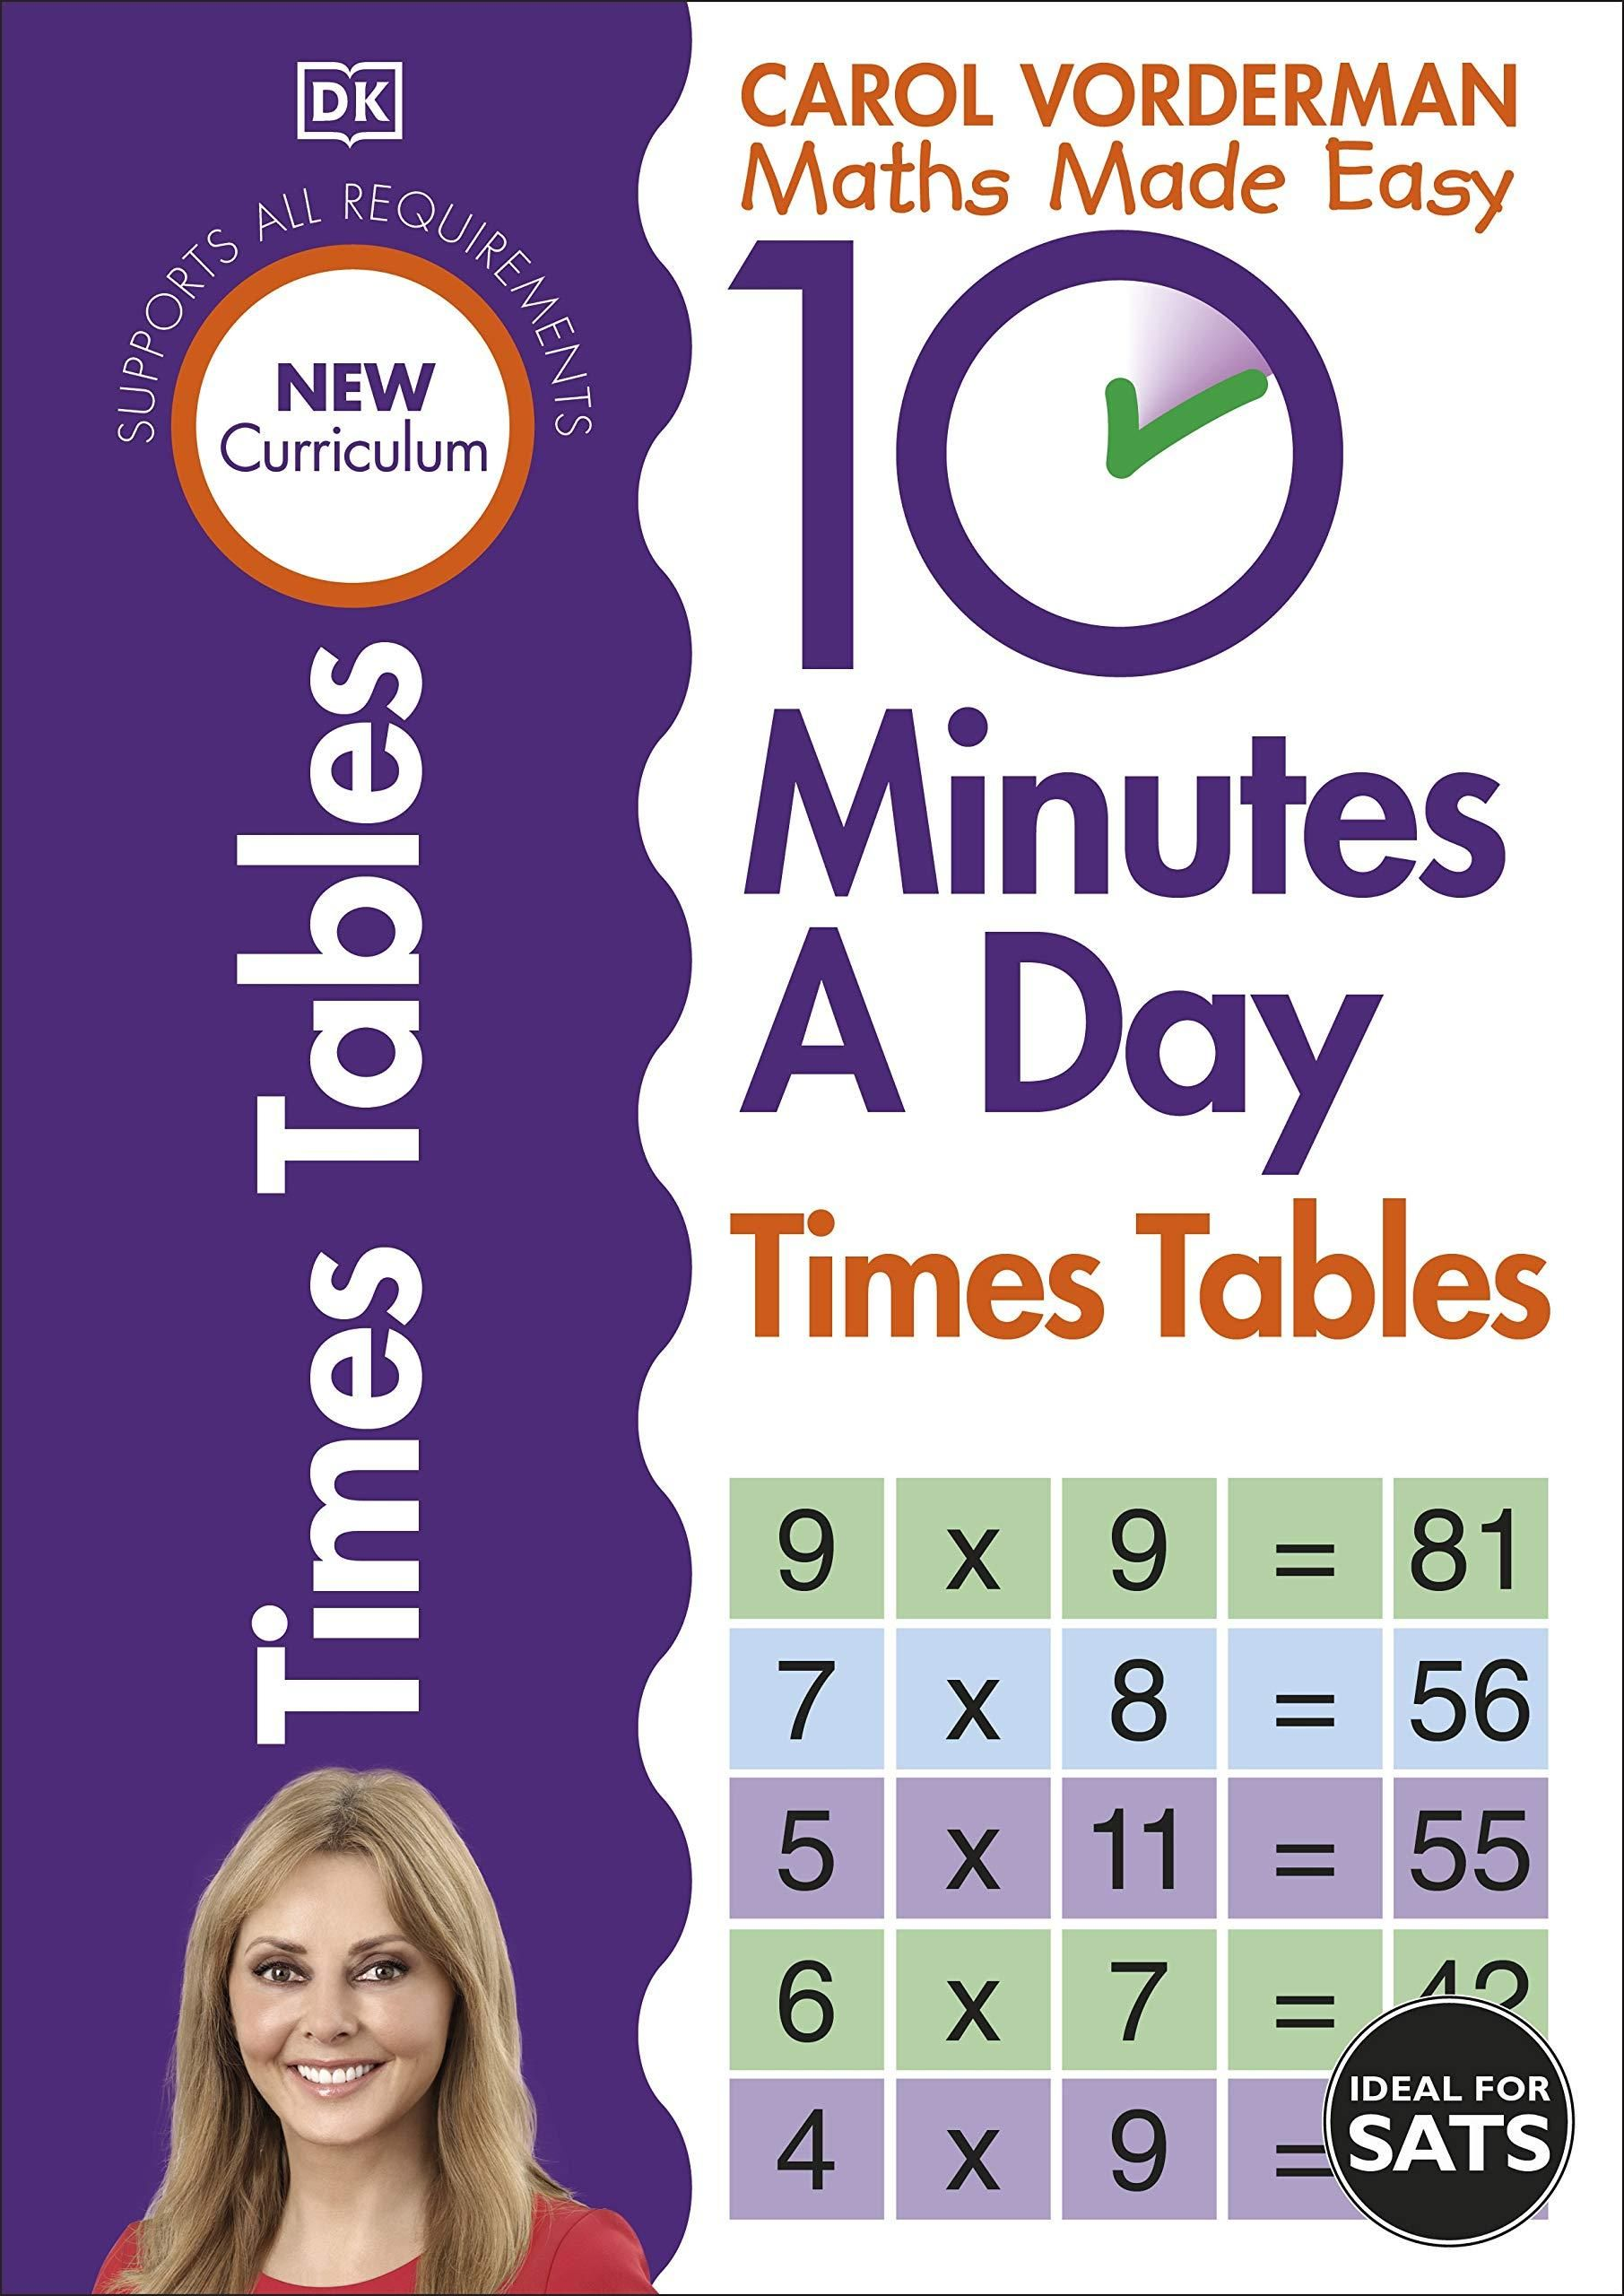 Free Download 10 Minutes A Day Times Tables Made Easy Workbooks Pdf In 2020 Times Tables Math Made Easy Carol Vorderman